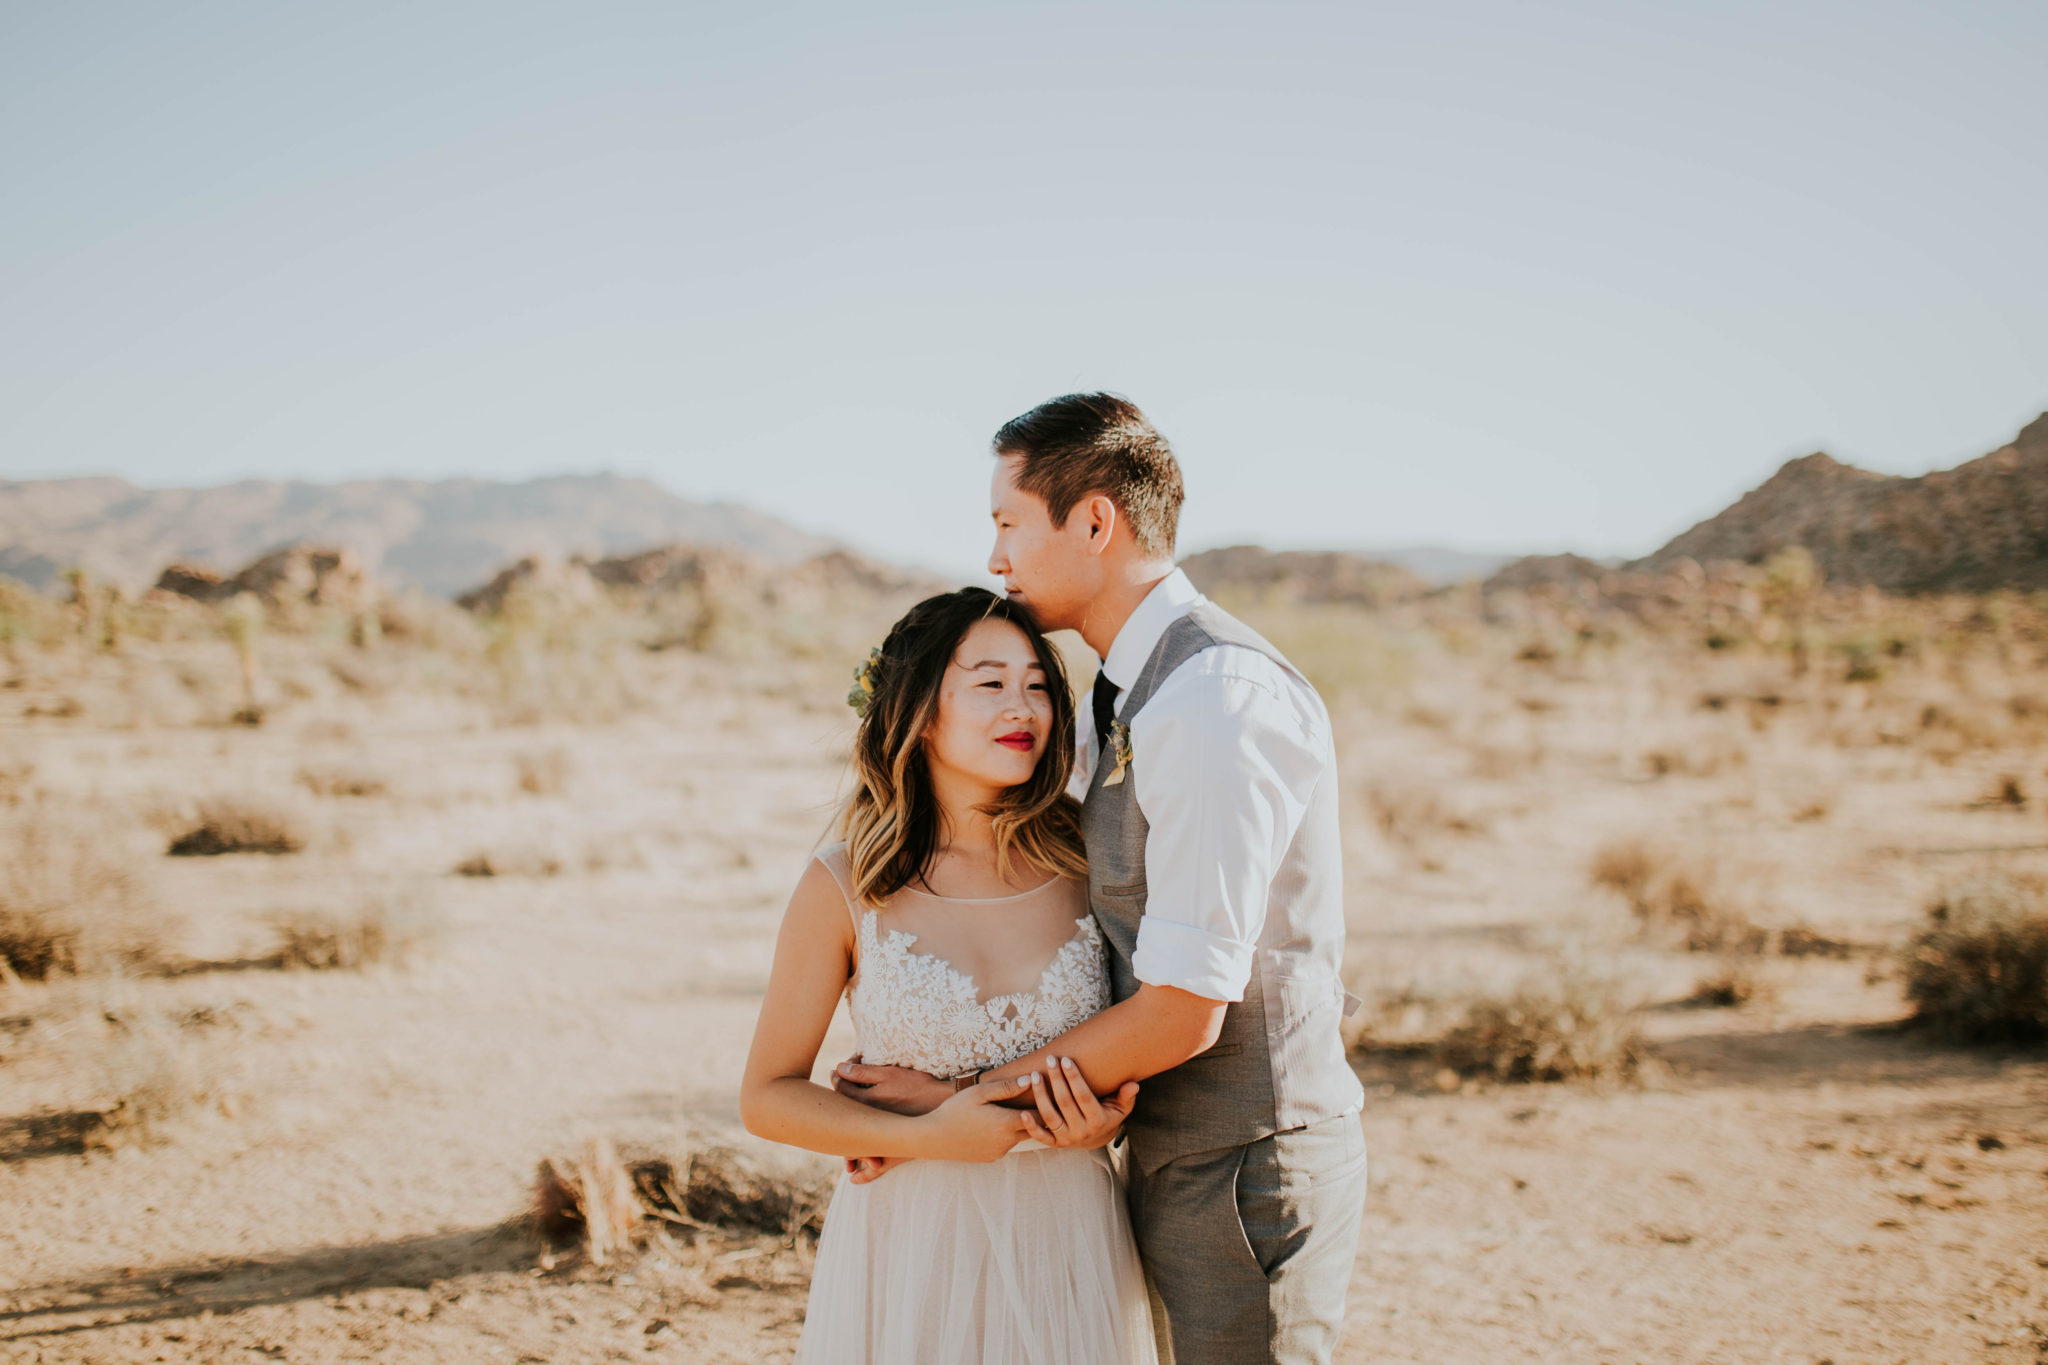 Mandy & Joey Joshua Tree Elopement California Wedding Photographer-101